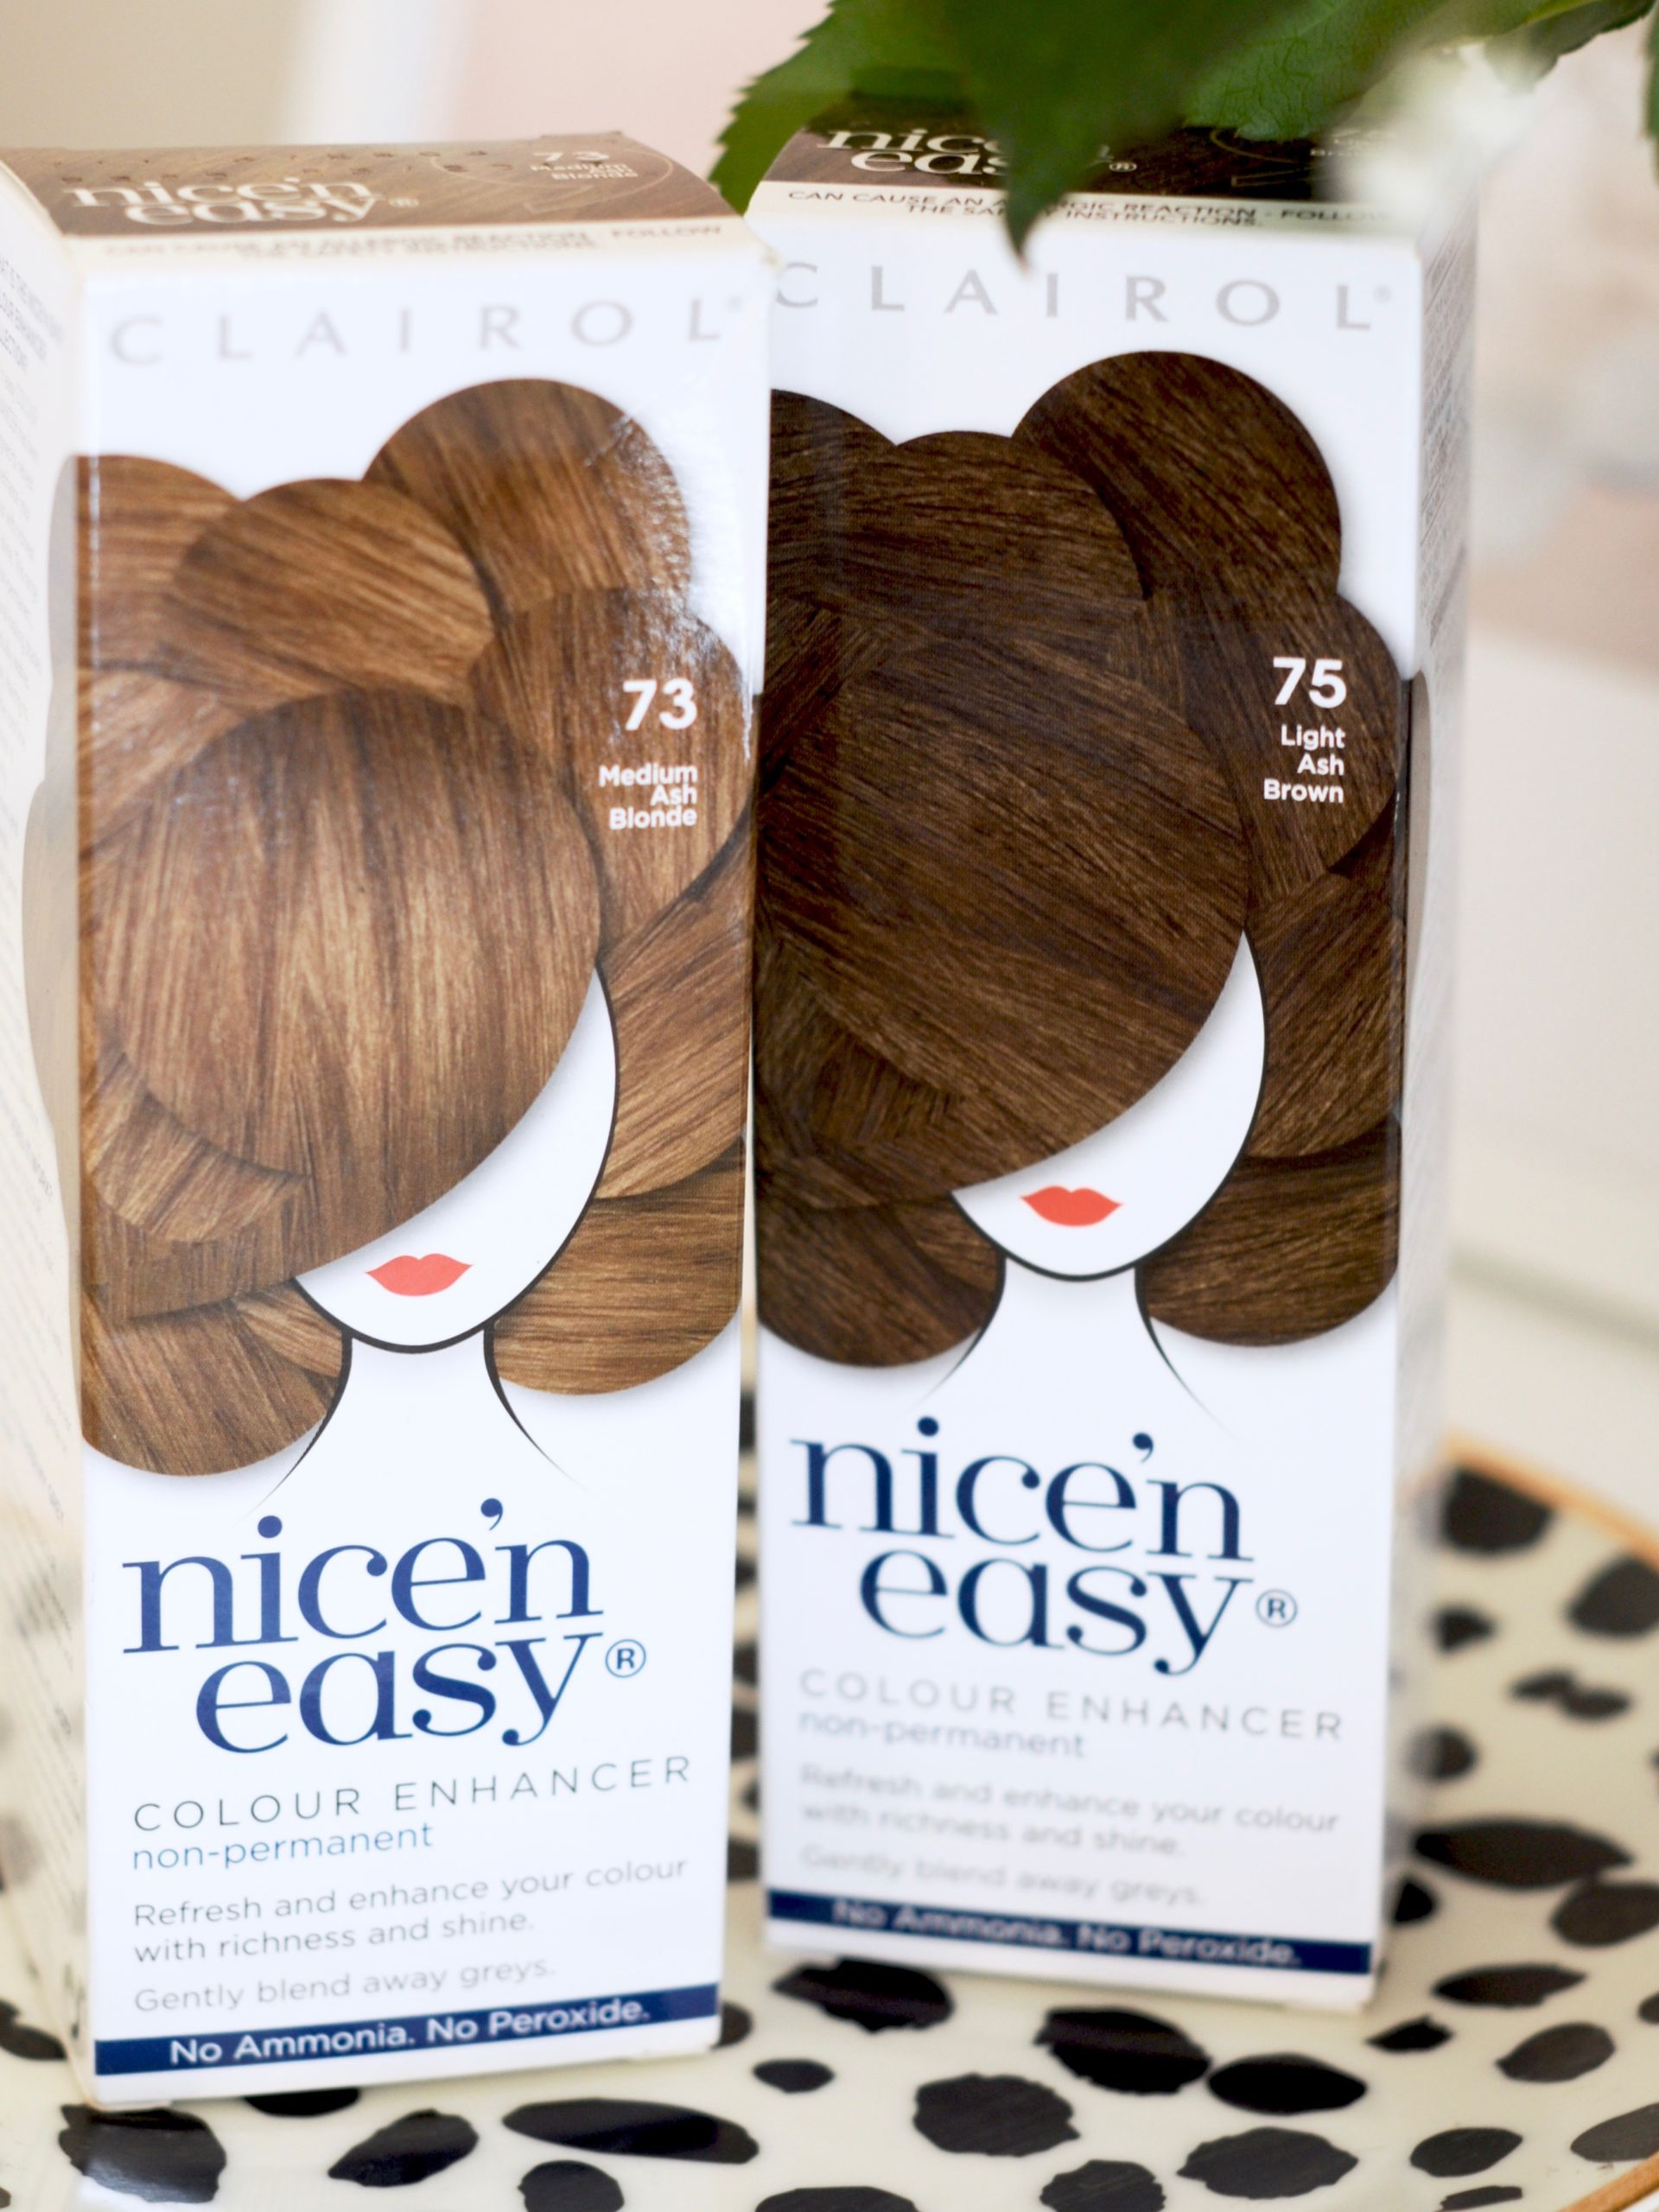 dye light fresh easy root of touch brown clairol permanent color style ash nice n beautiful medium up hair